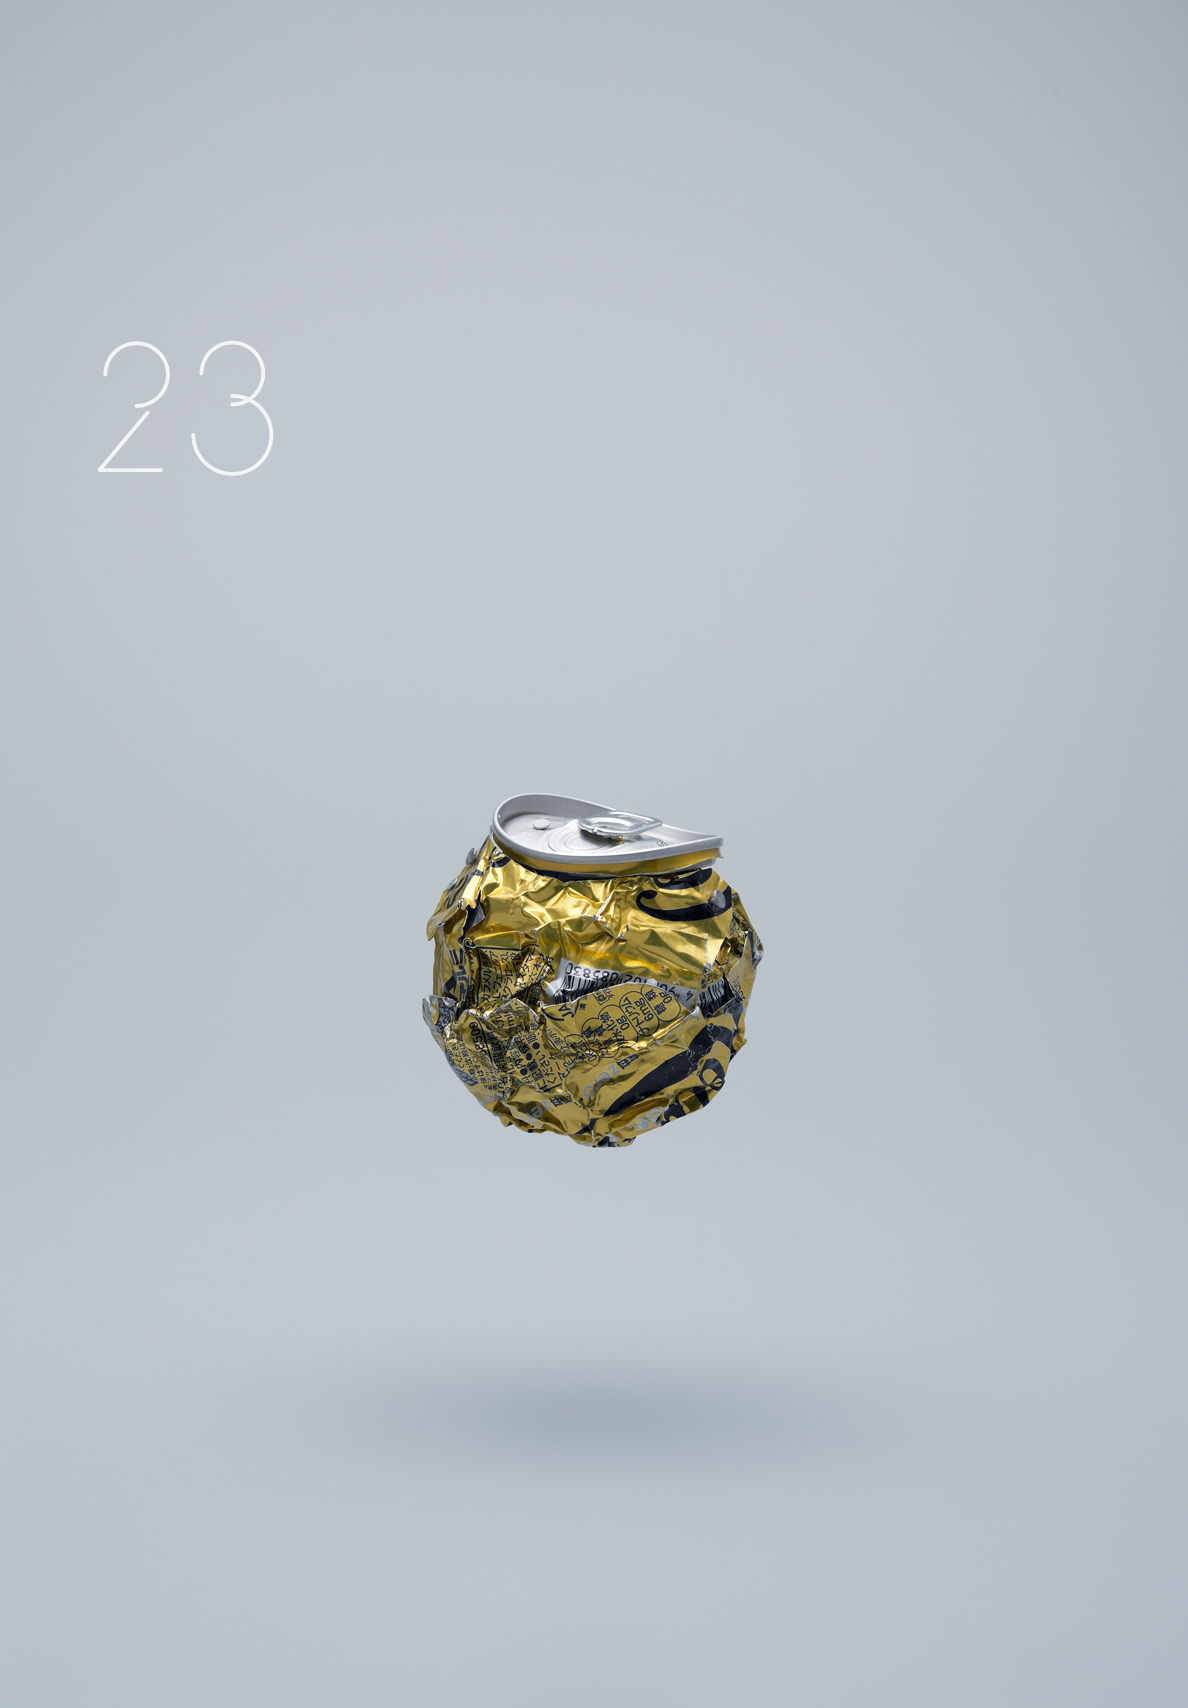 25tin canのコピー